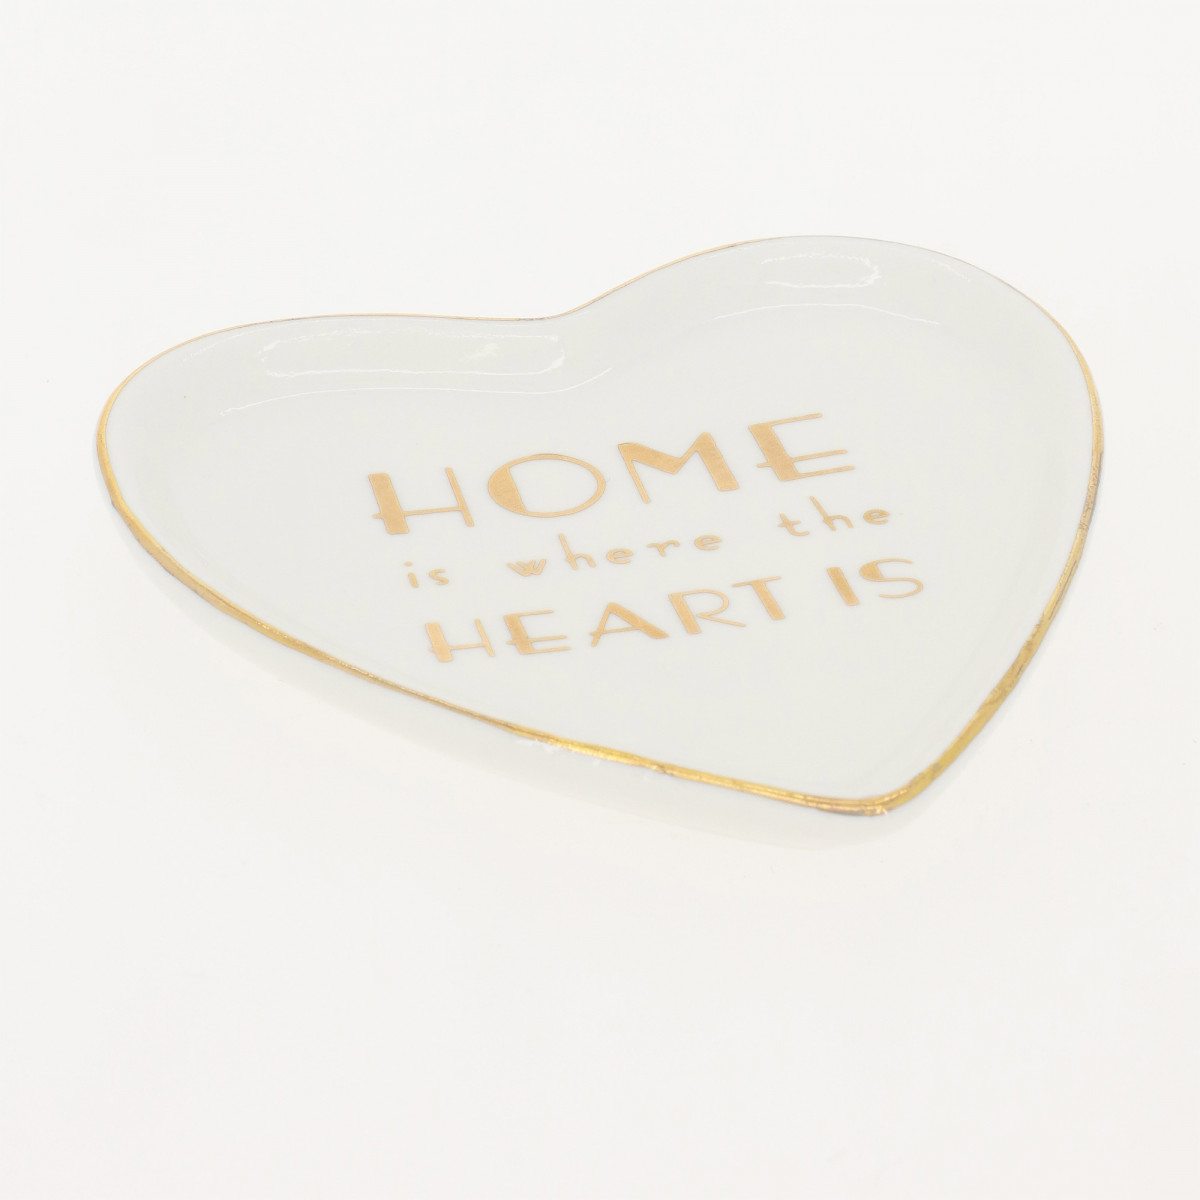 Coupelle Porte Bijoux HOME IS WHERE THE HEART IS - 12 x 13,5 cm